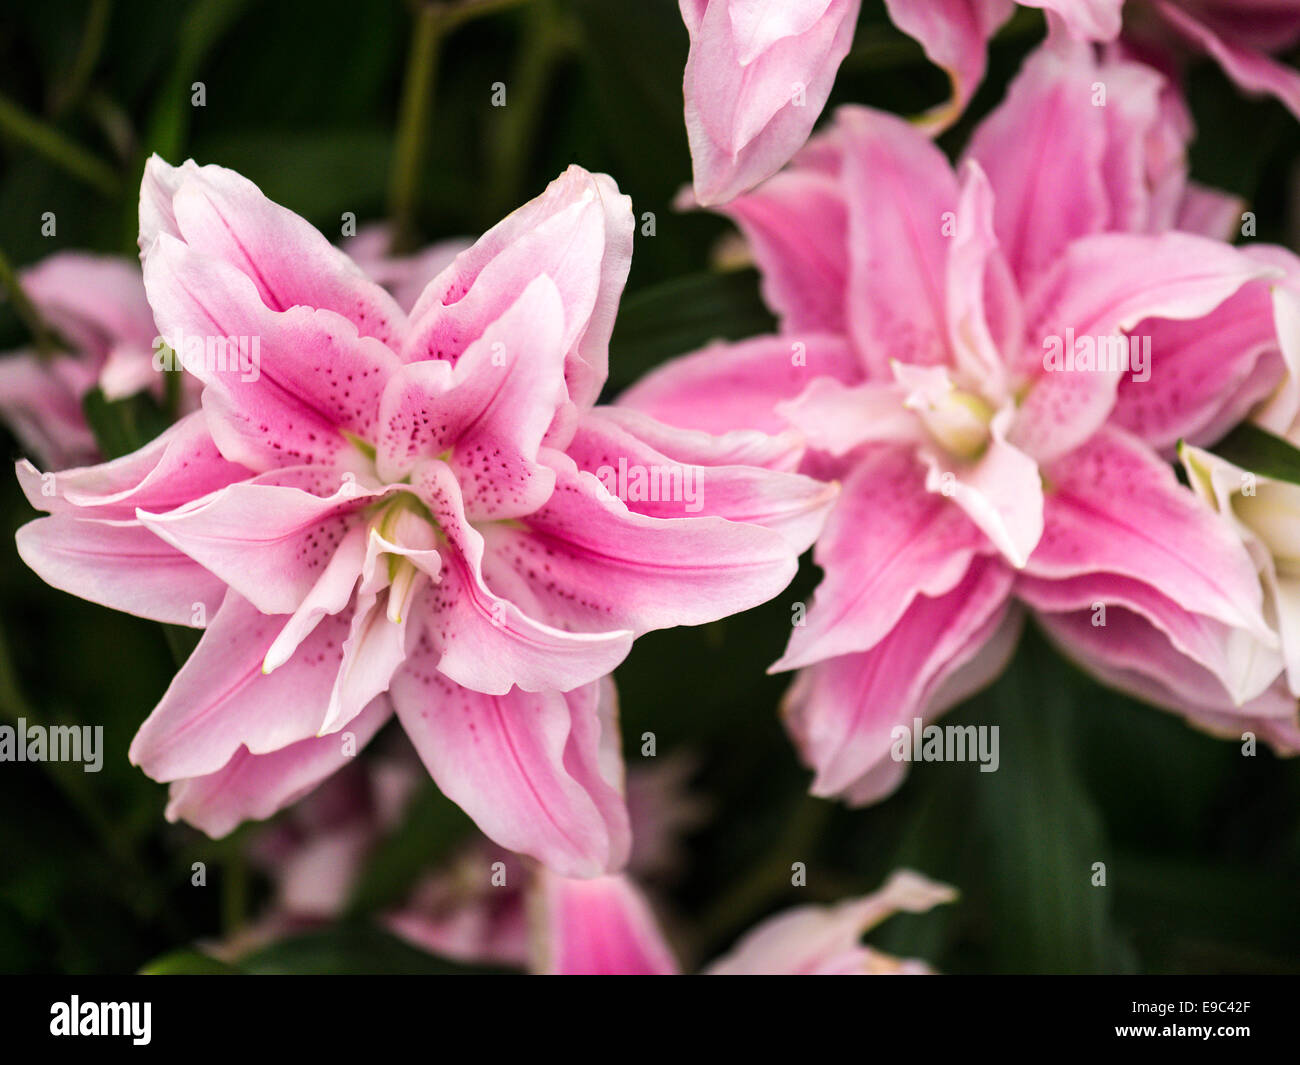 Lilium white with bold central pink stripe, curly multi layered petals with prominent carpel. - Stock Image